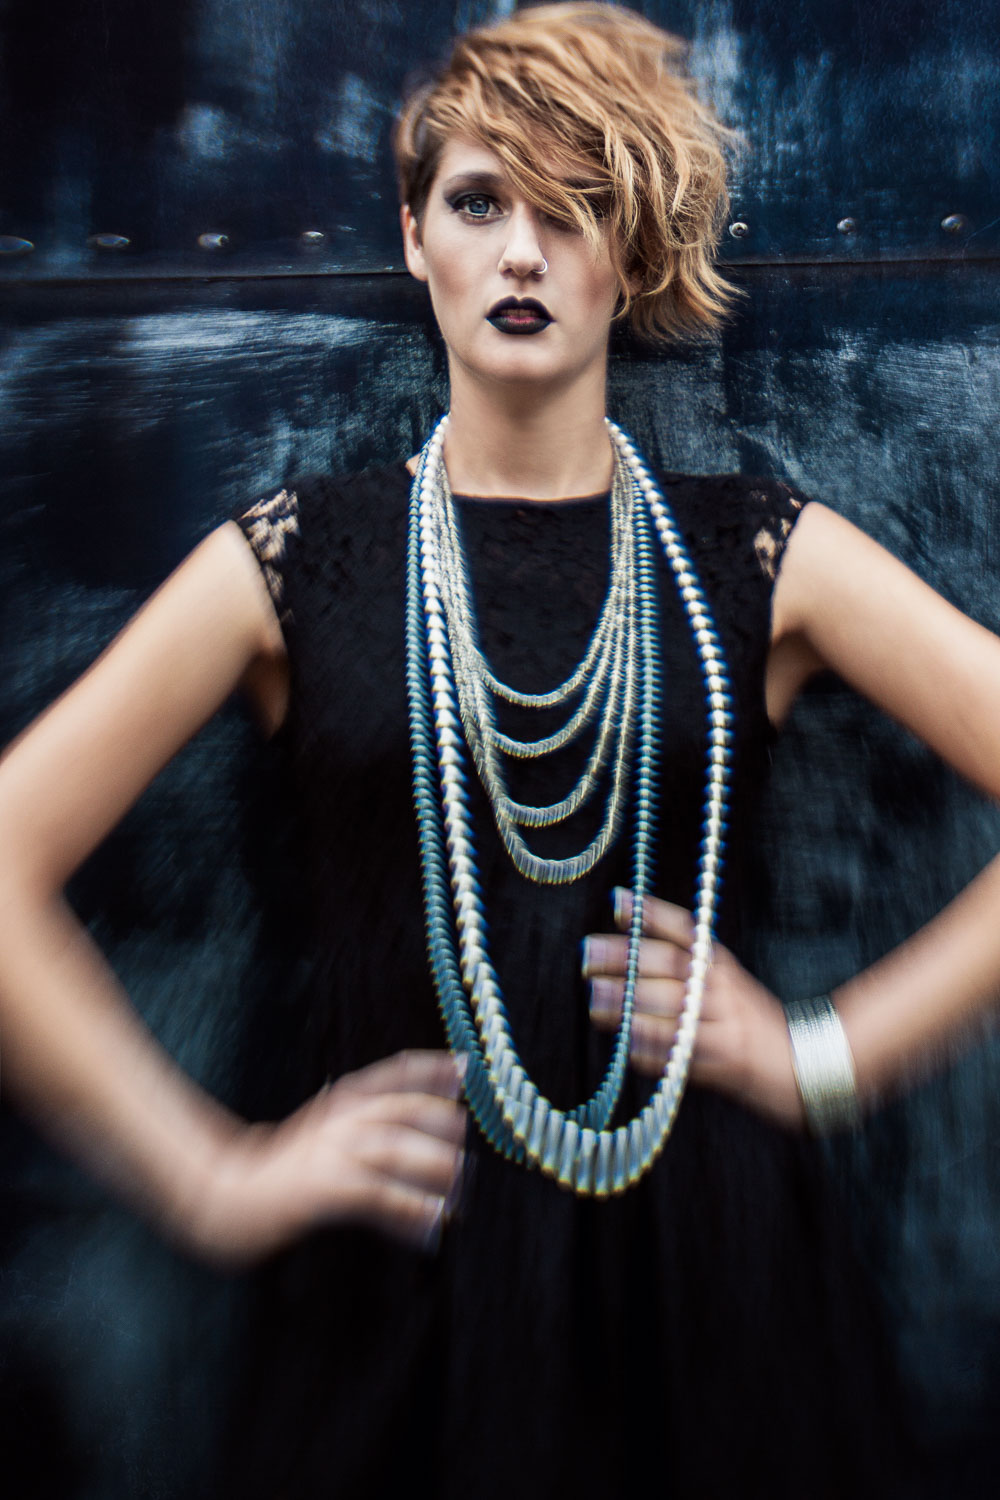 Female model wearing little black dress and beaded necklaces